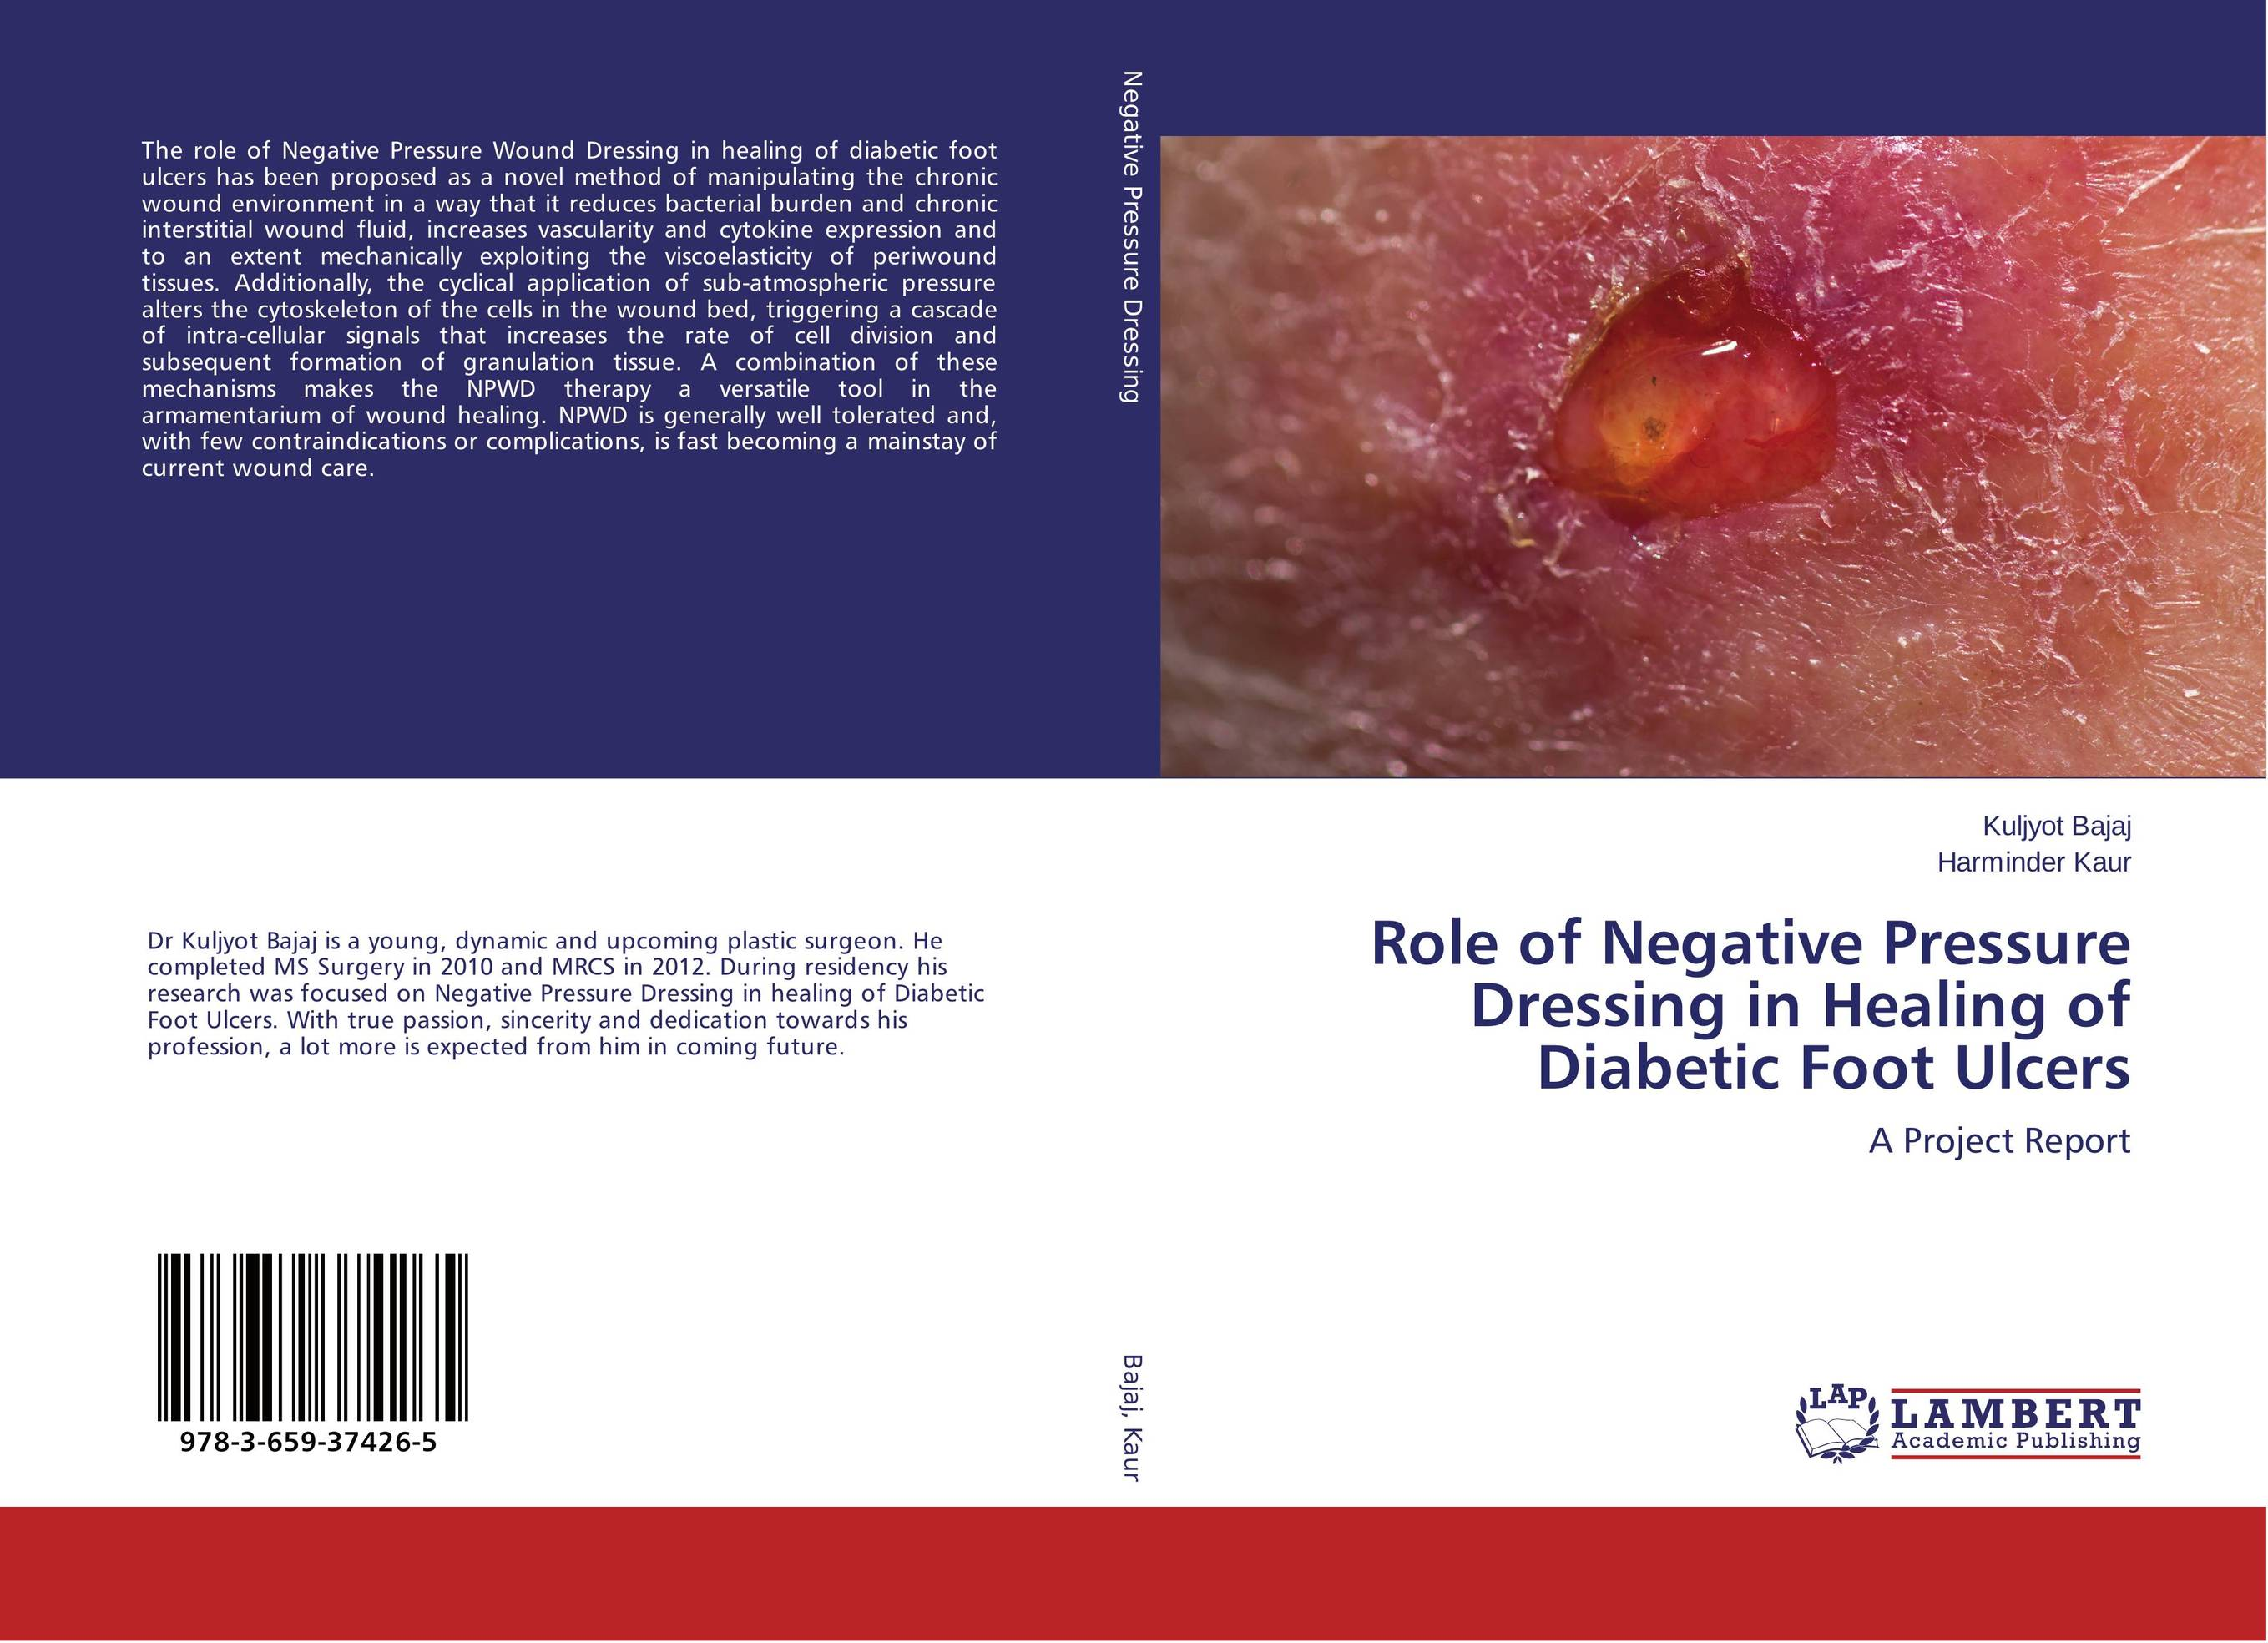 Role of Negative Pressure Dressing in Healing of Diabetic Foot Ulcers wound healing properties of some indigenous ghanaian plants